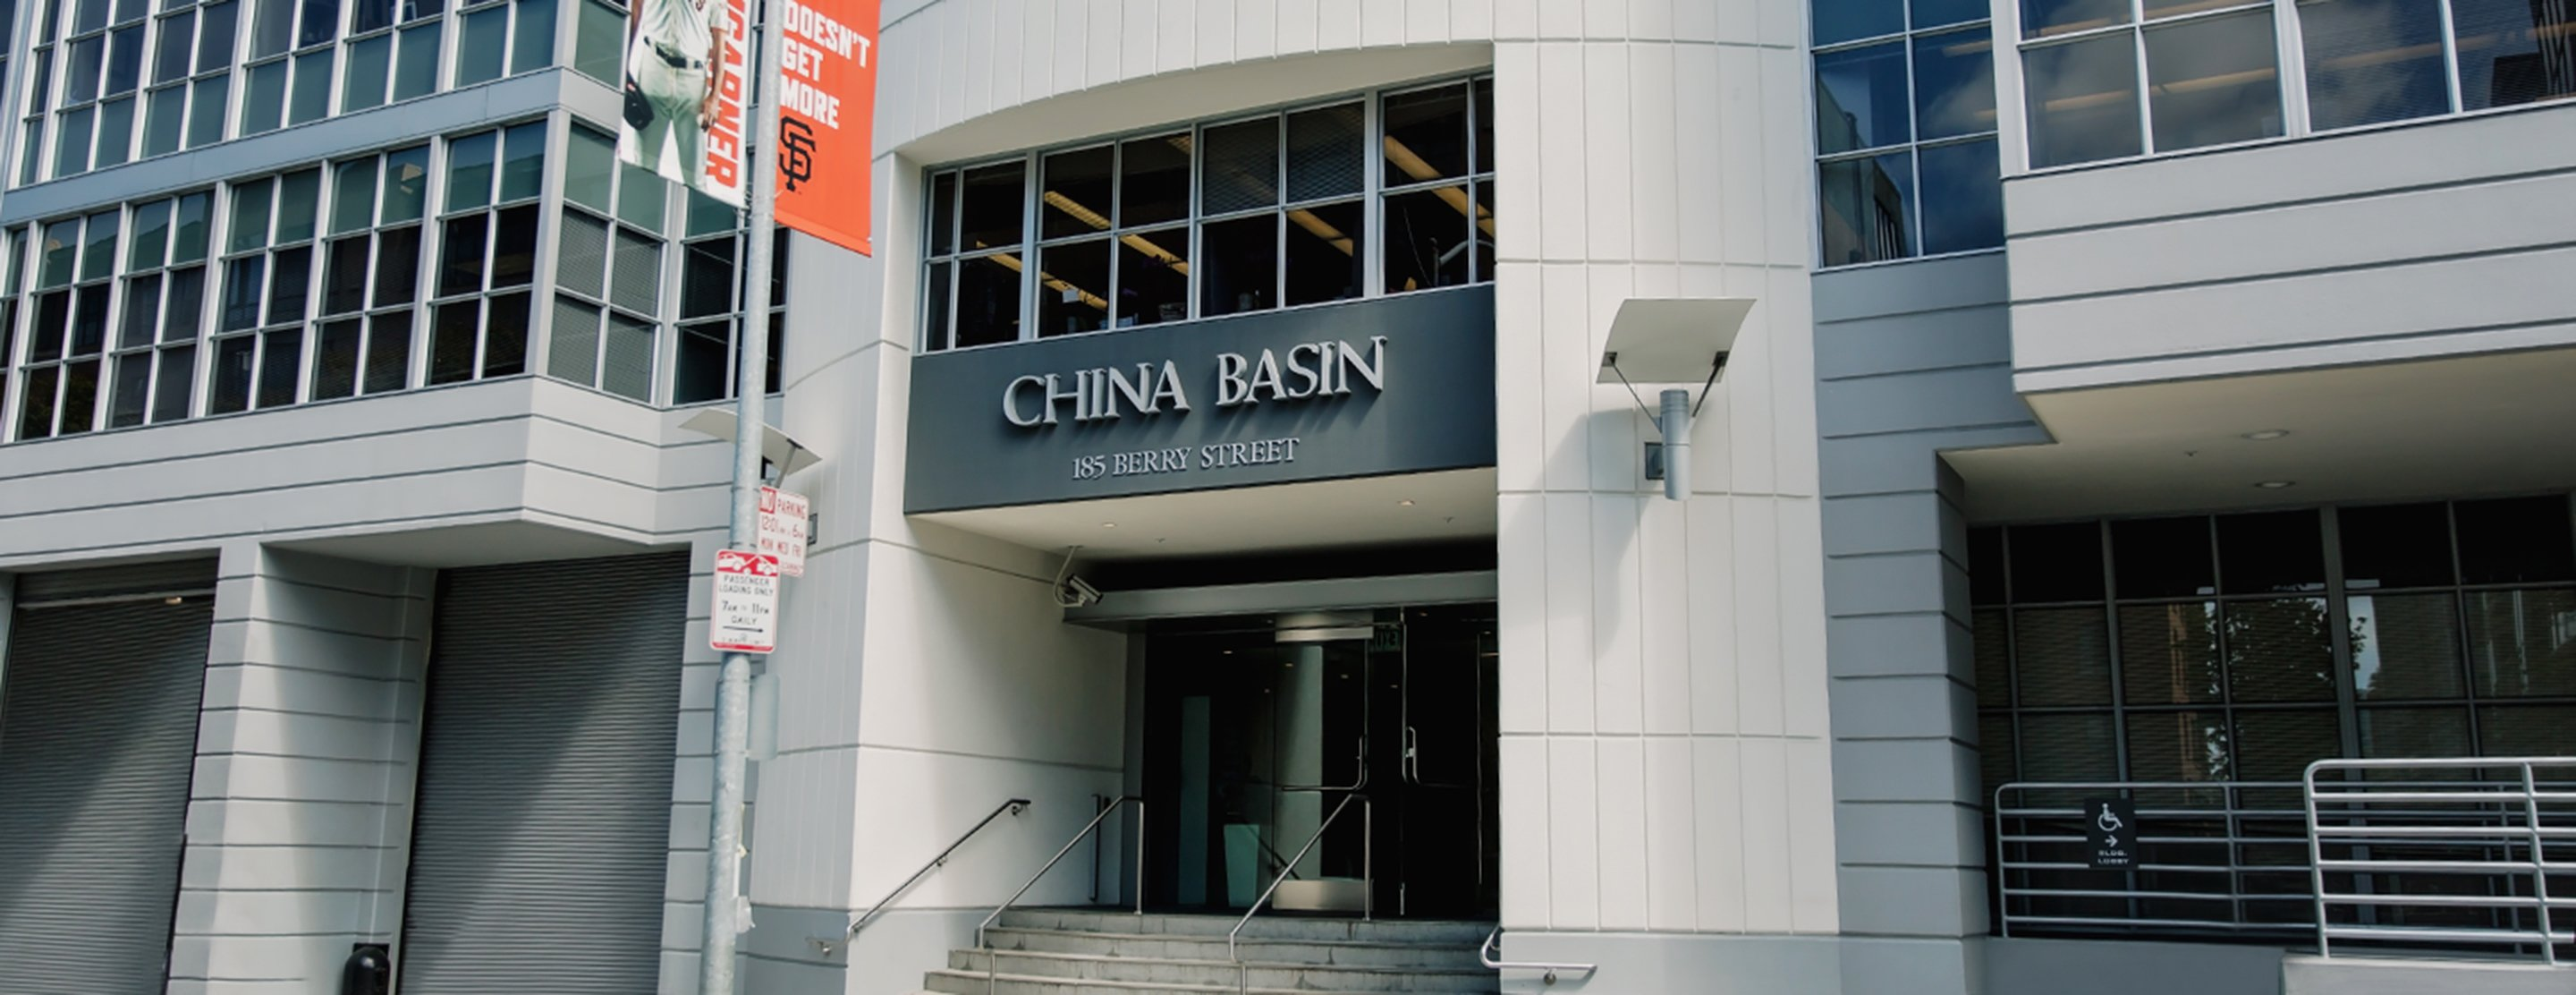 China Basin building entrance